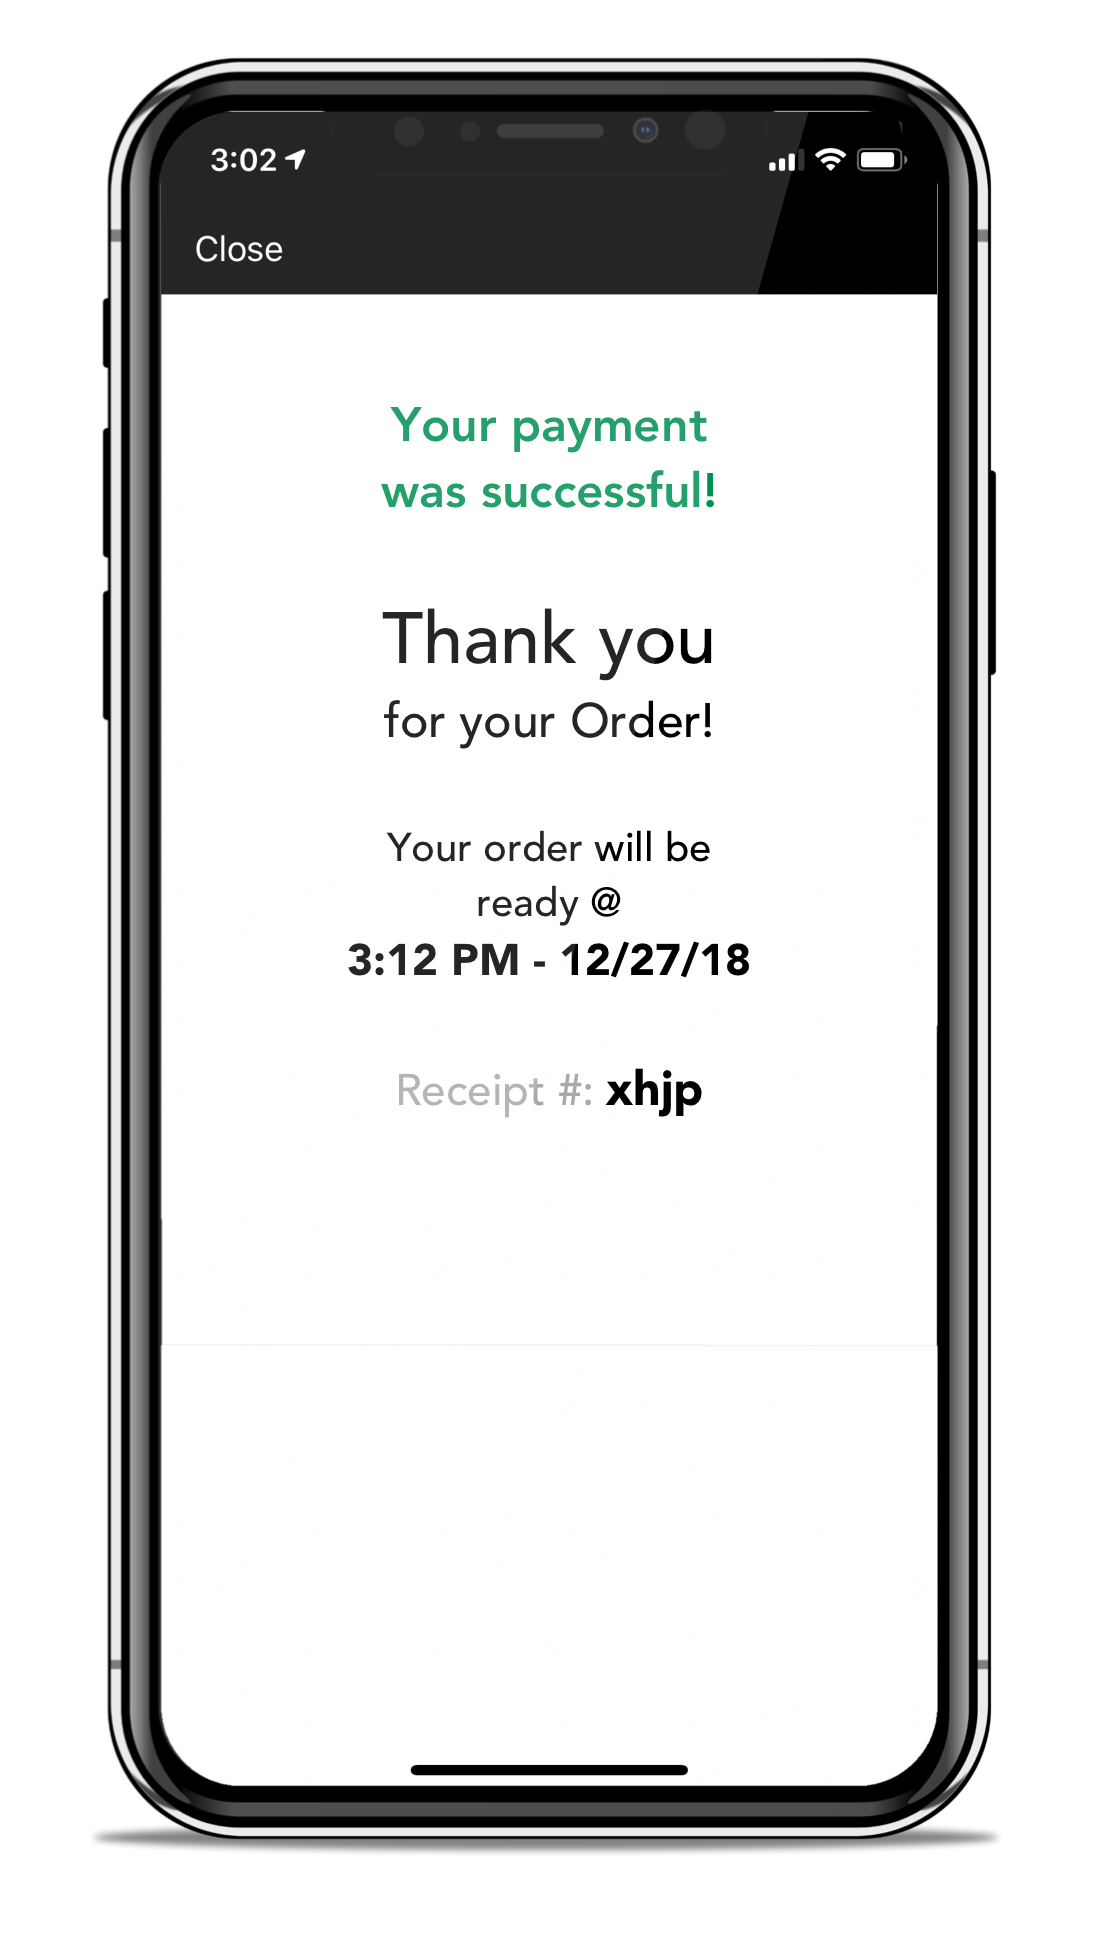 Order Successful Confirmation Screen